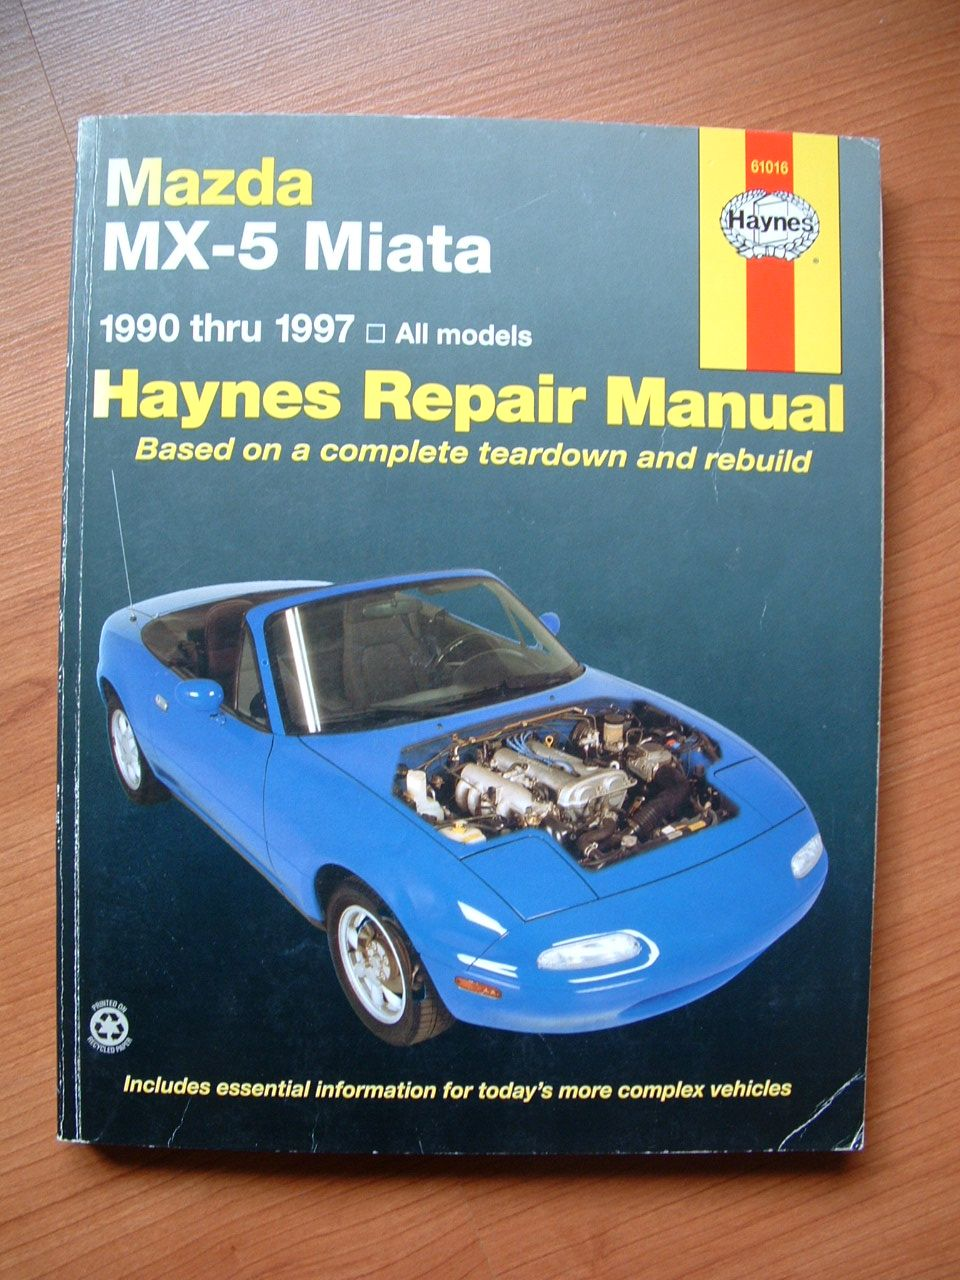 Models covered by this manual: All Mazda MX-5 Miata models 1990 thru 1997